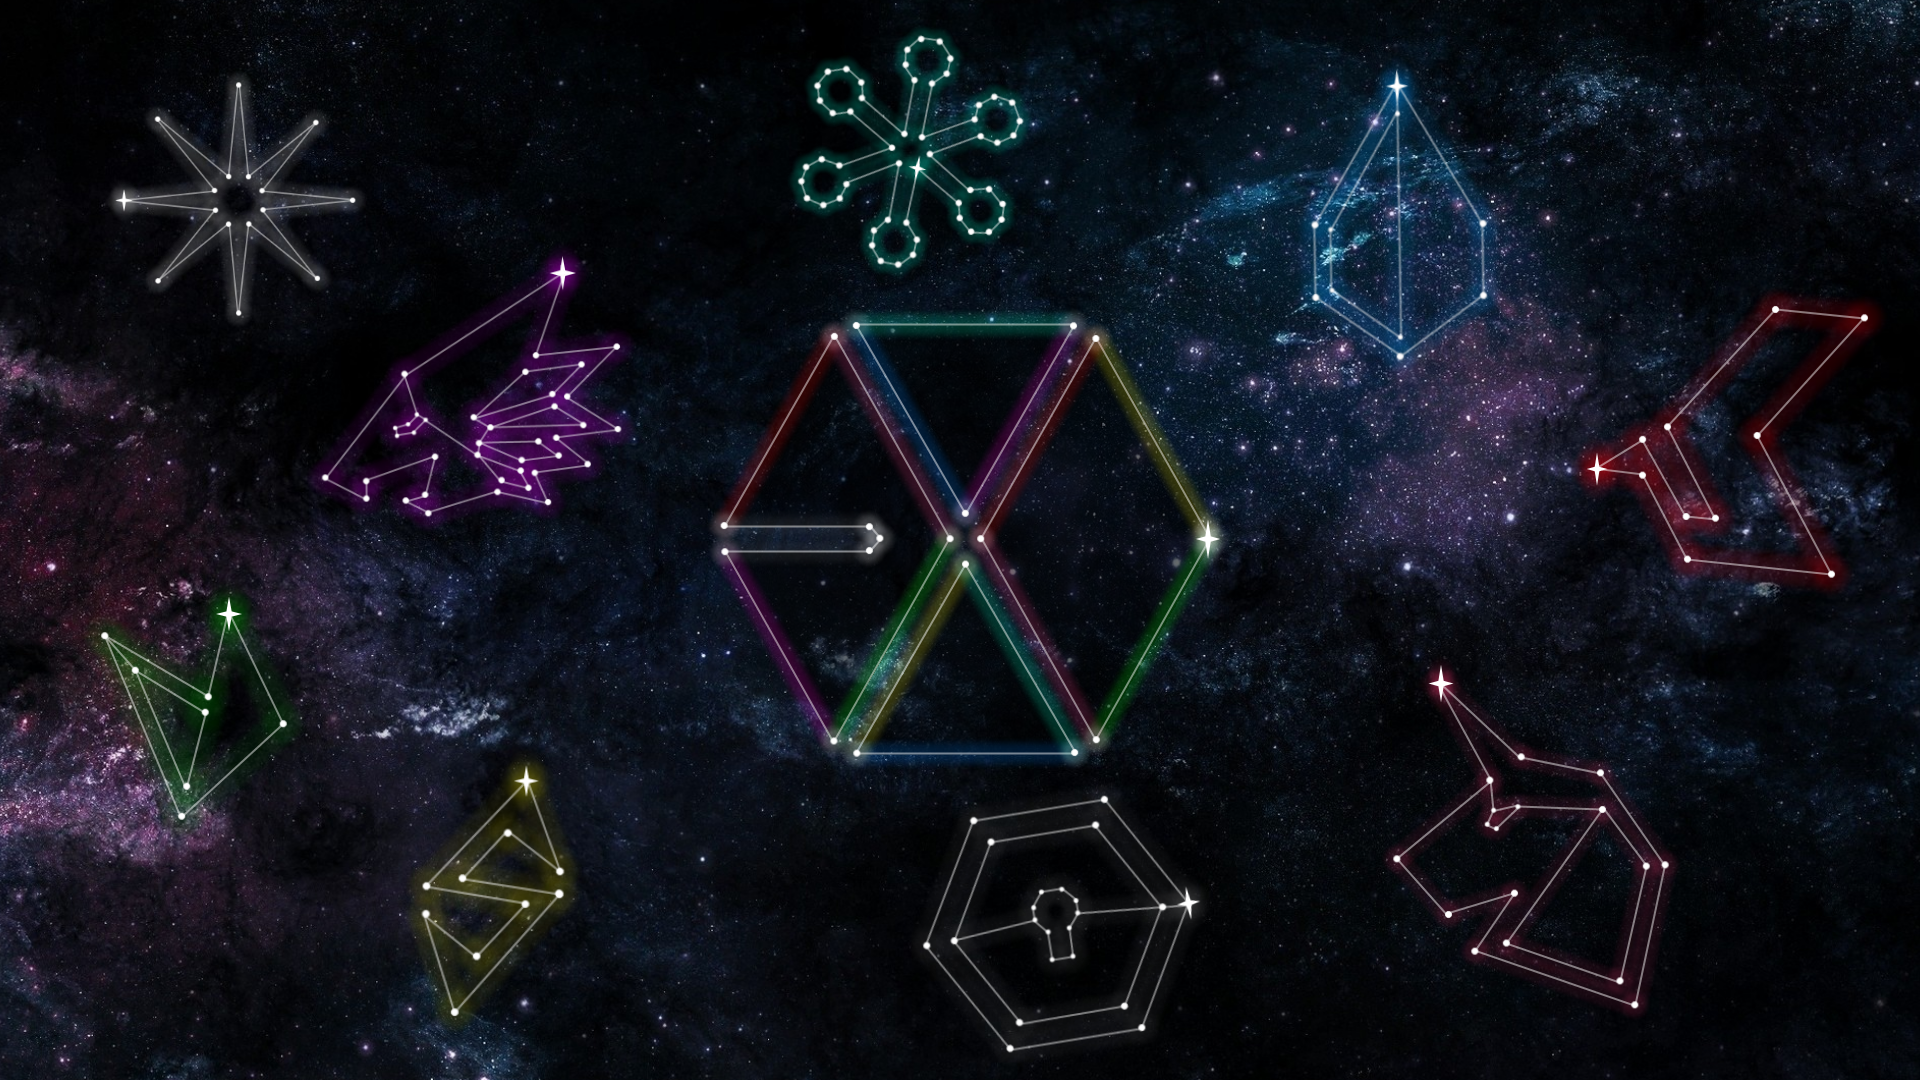 Exo Constellation Pc Wallpaper C Exoslotto Do Not Edit Insta Ohsorryprue Spam Pruesorryoh Hi Feel Free T Exo Chibi Fanart Exo Chibi Give It To Me